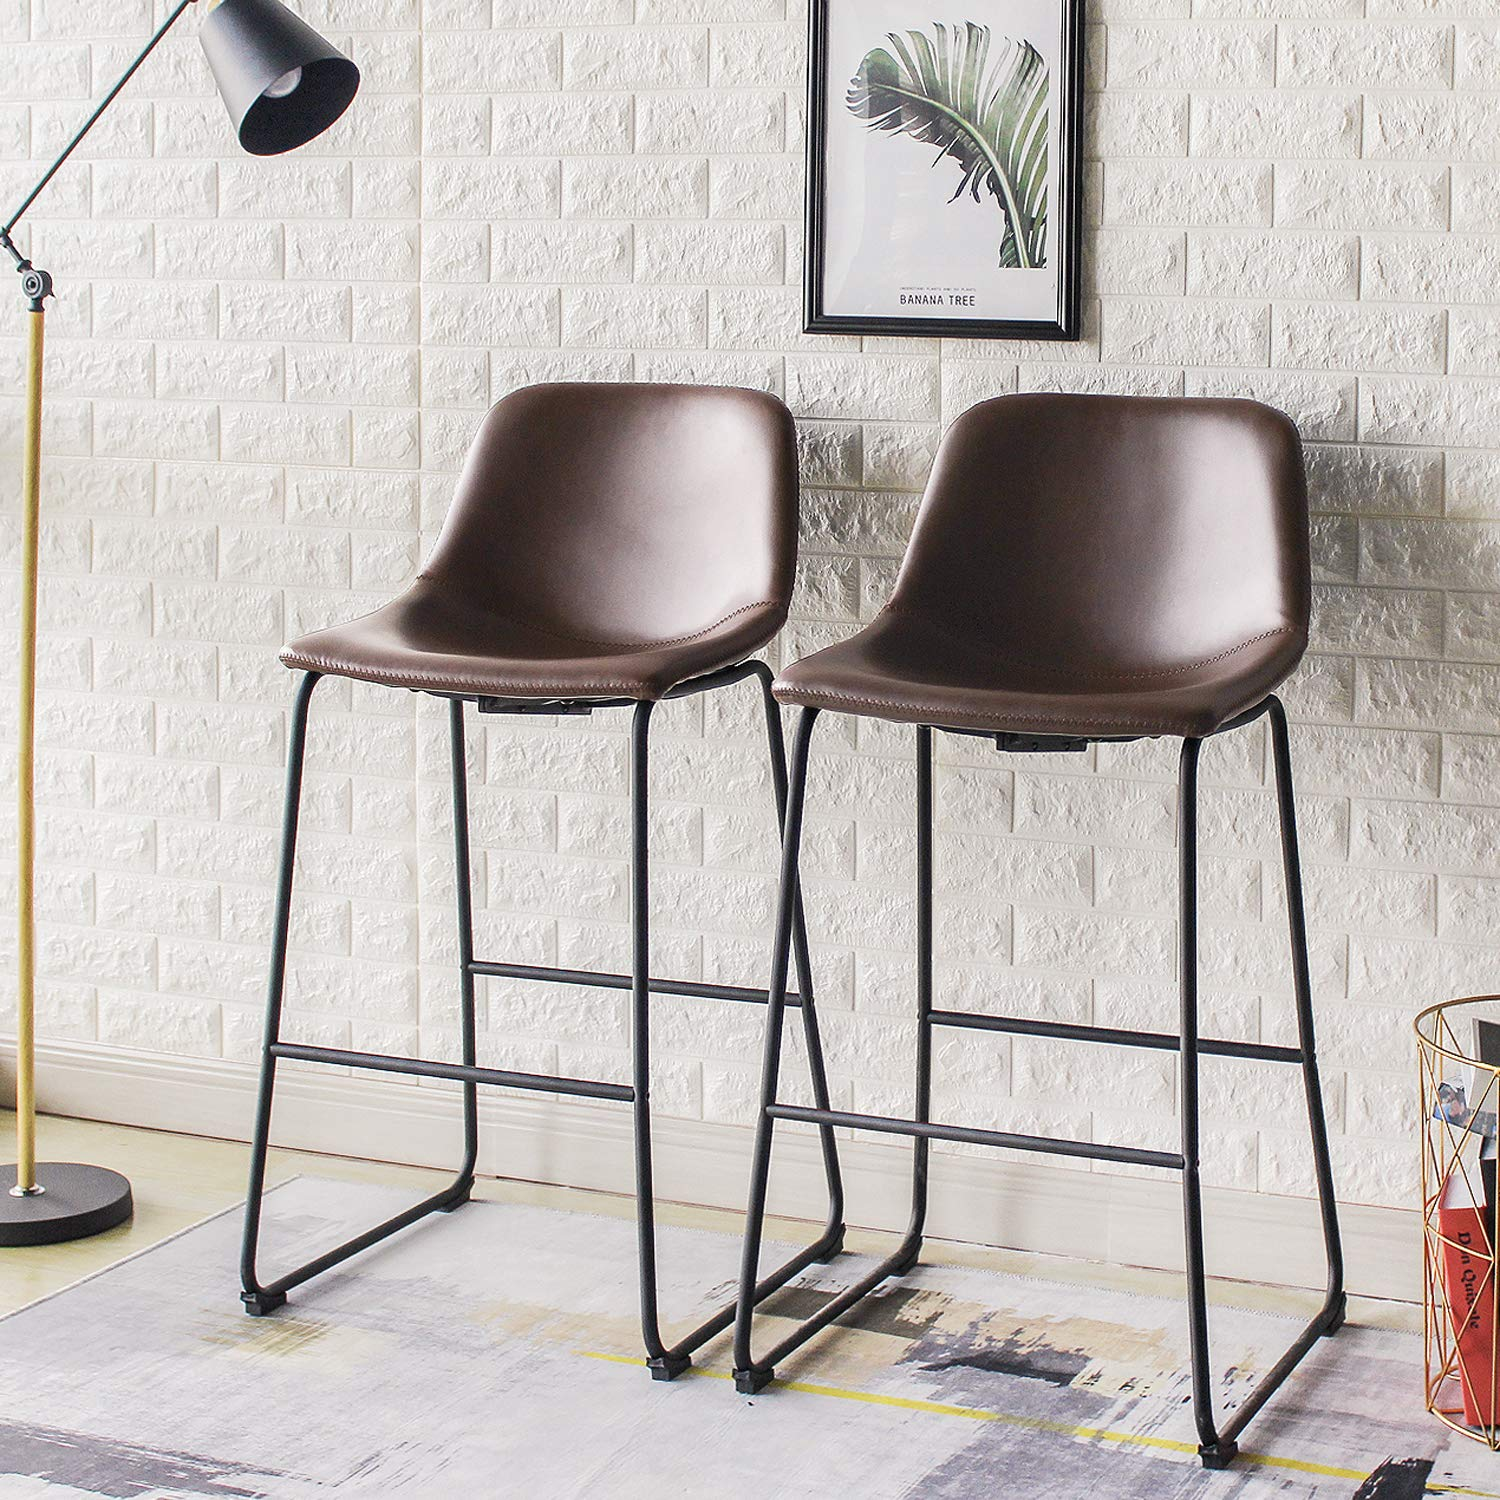 Rfiver Pu Leather Bar Stools Rustic Barstools with Back and Footrest, Kitchen Bar Height Stool Chairs Set of 2, Brown BS1002 by Rfiver